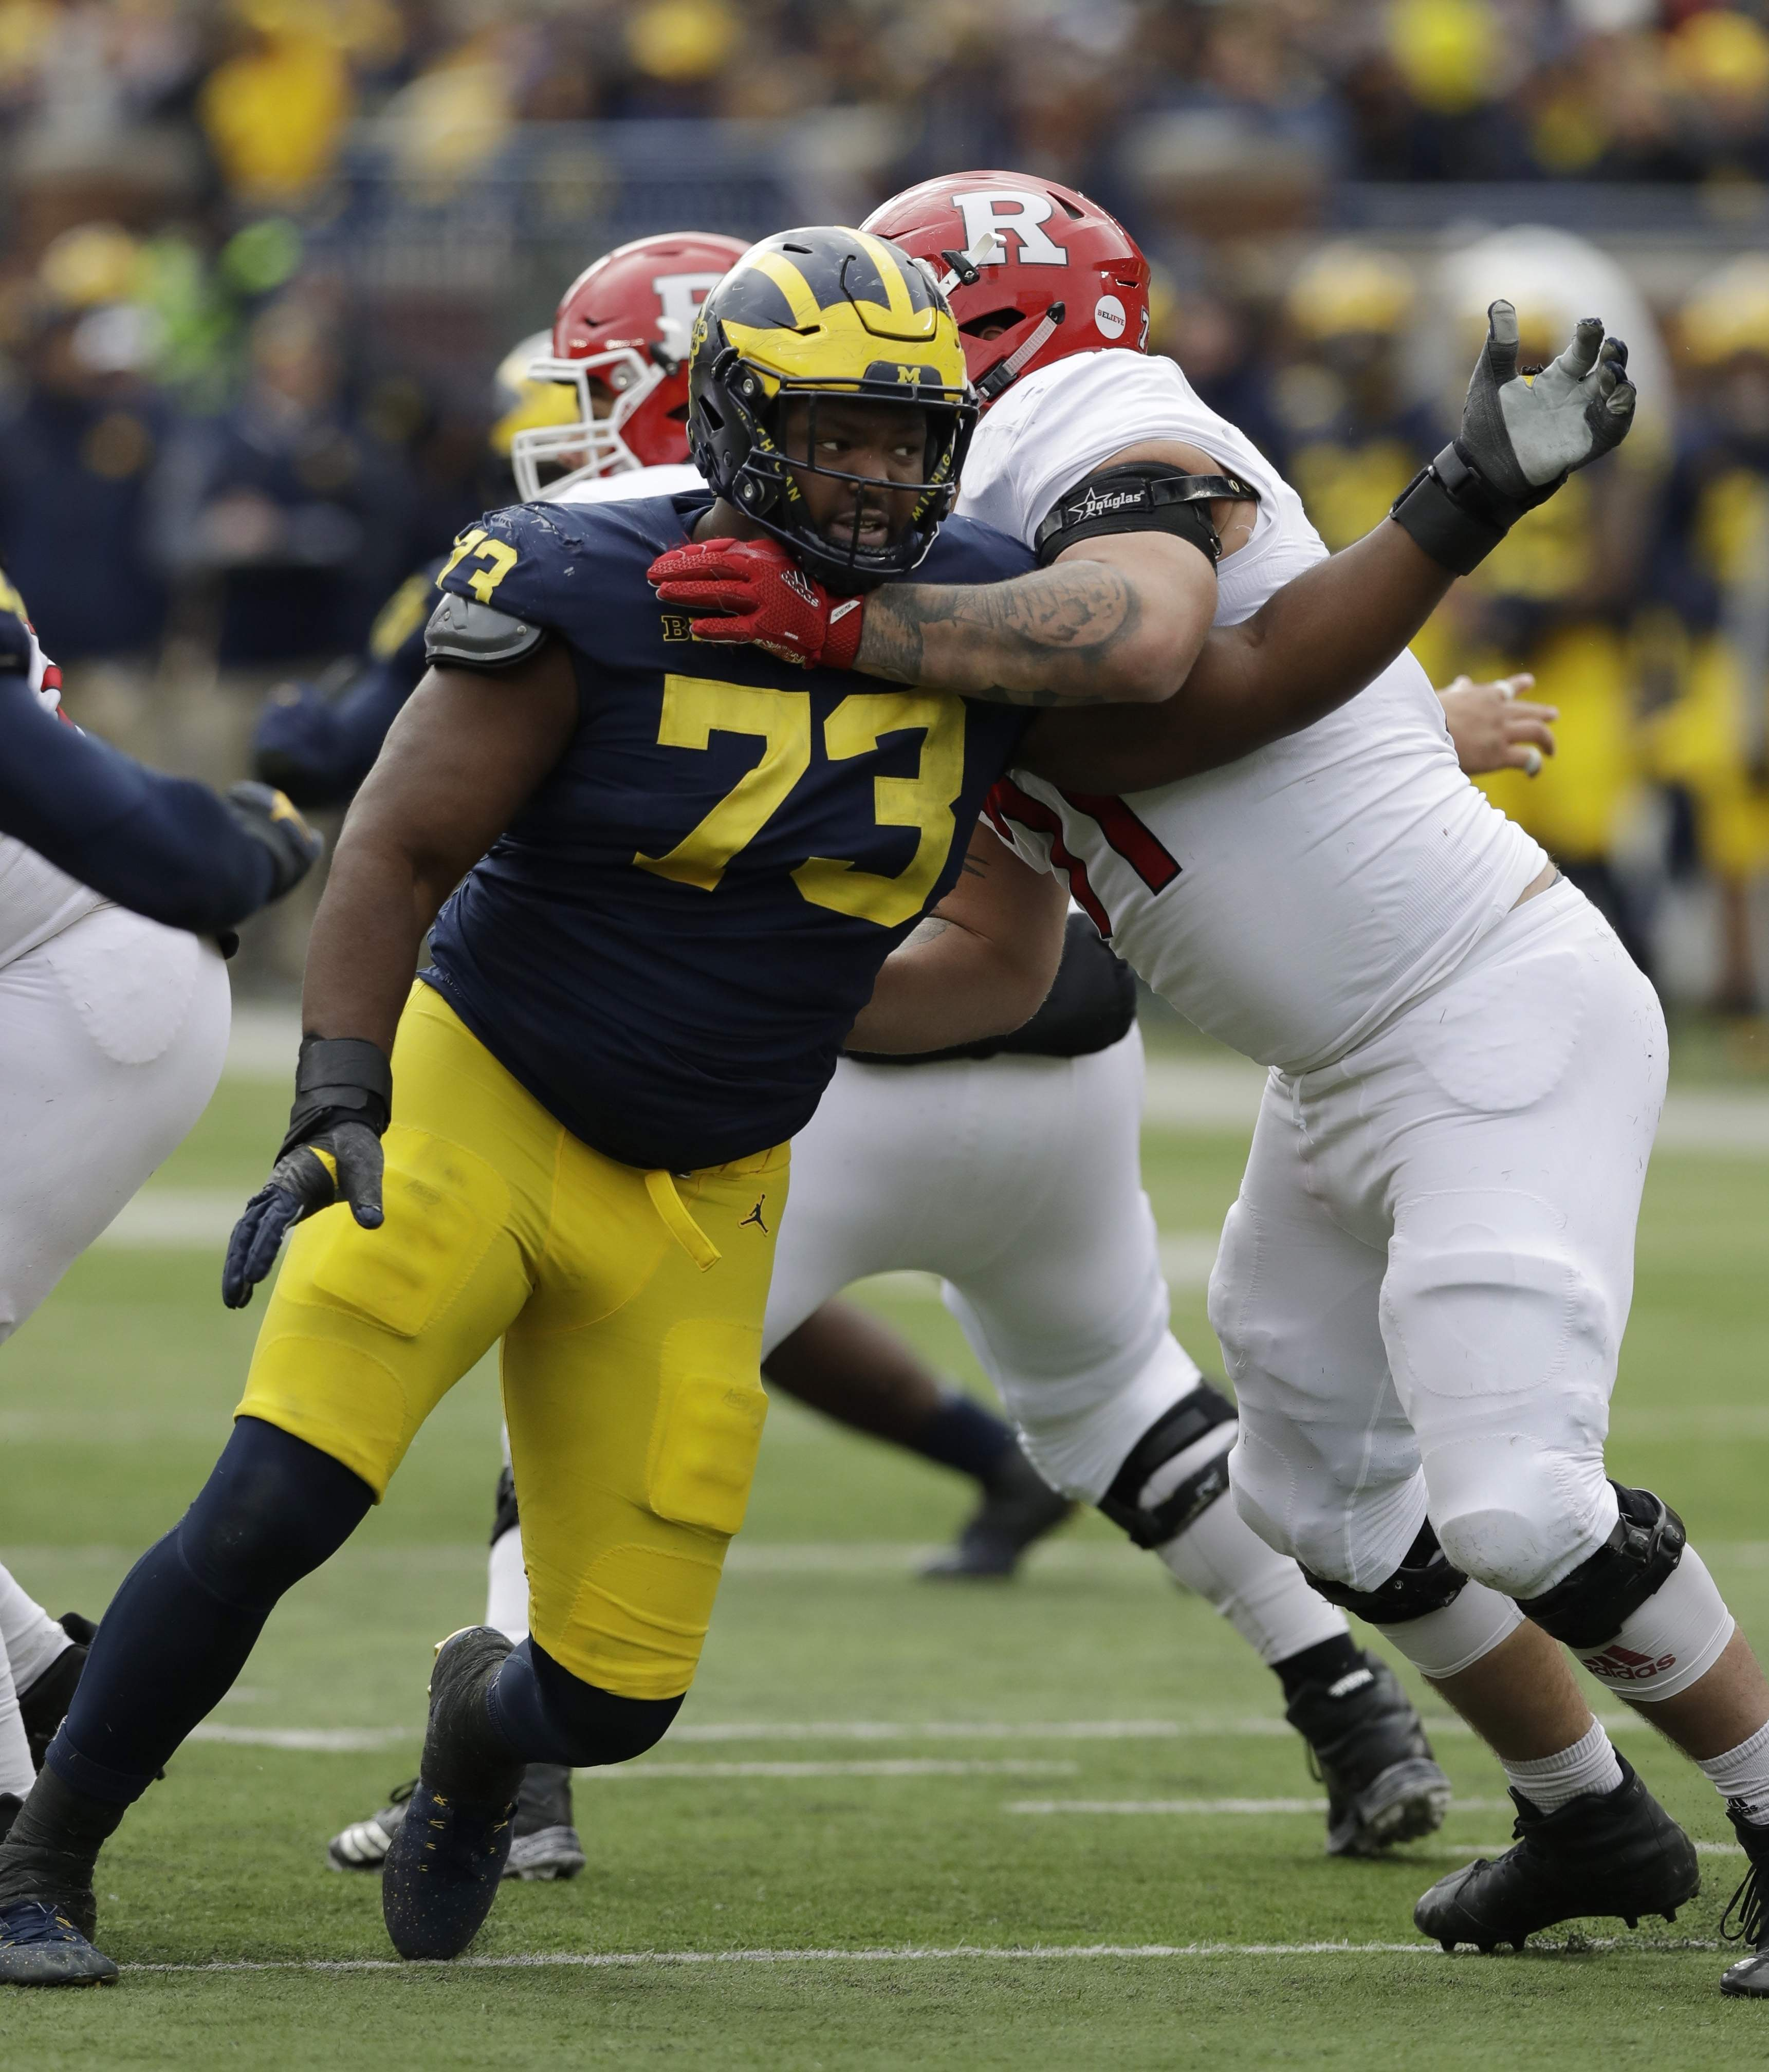 promo code 18f49 6c73f Outback Bowl journal: Michigan's Maurice Hurst won't sit out